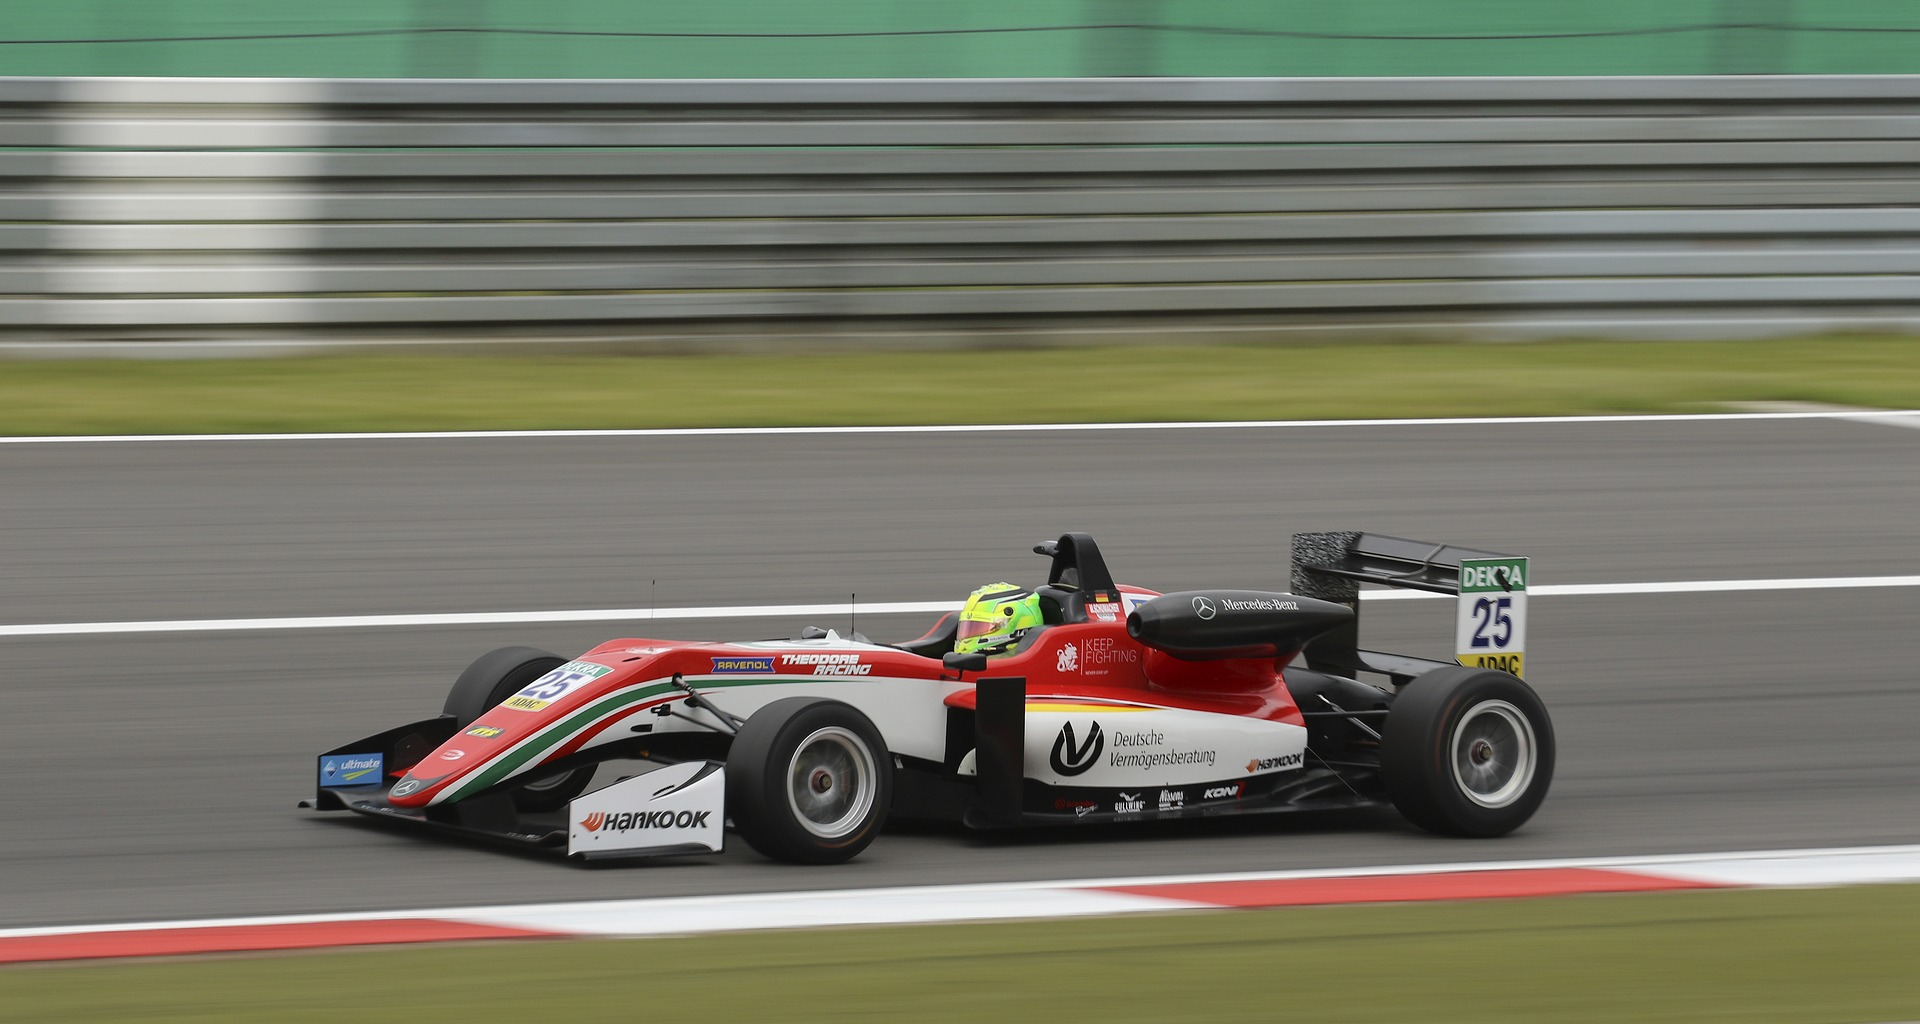 Formula 1 testing- one of second test in car race